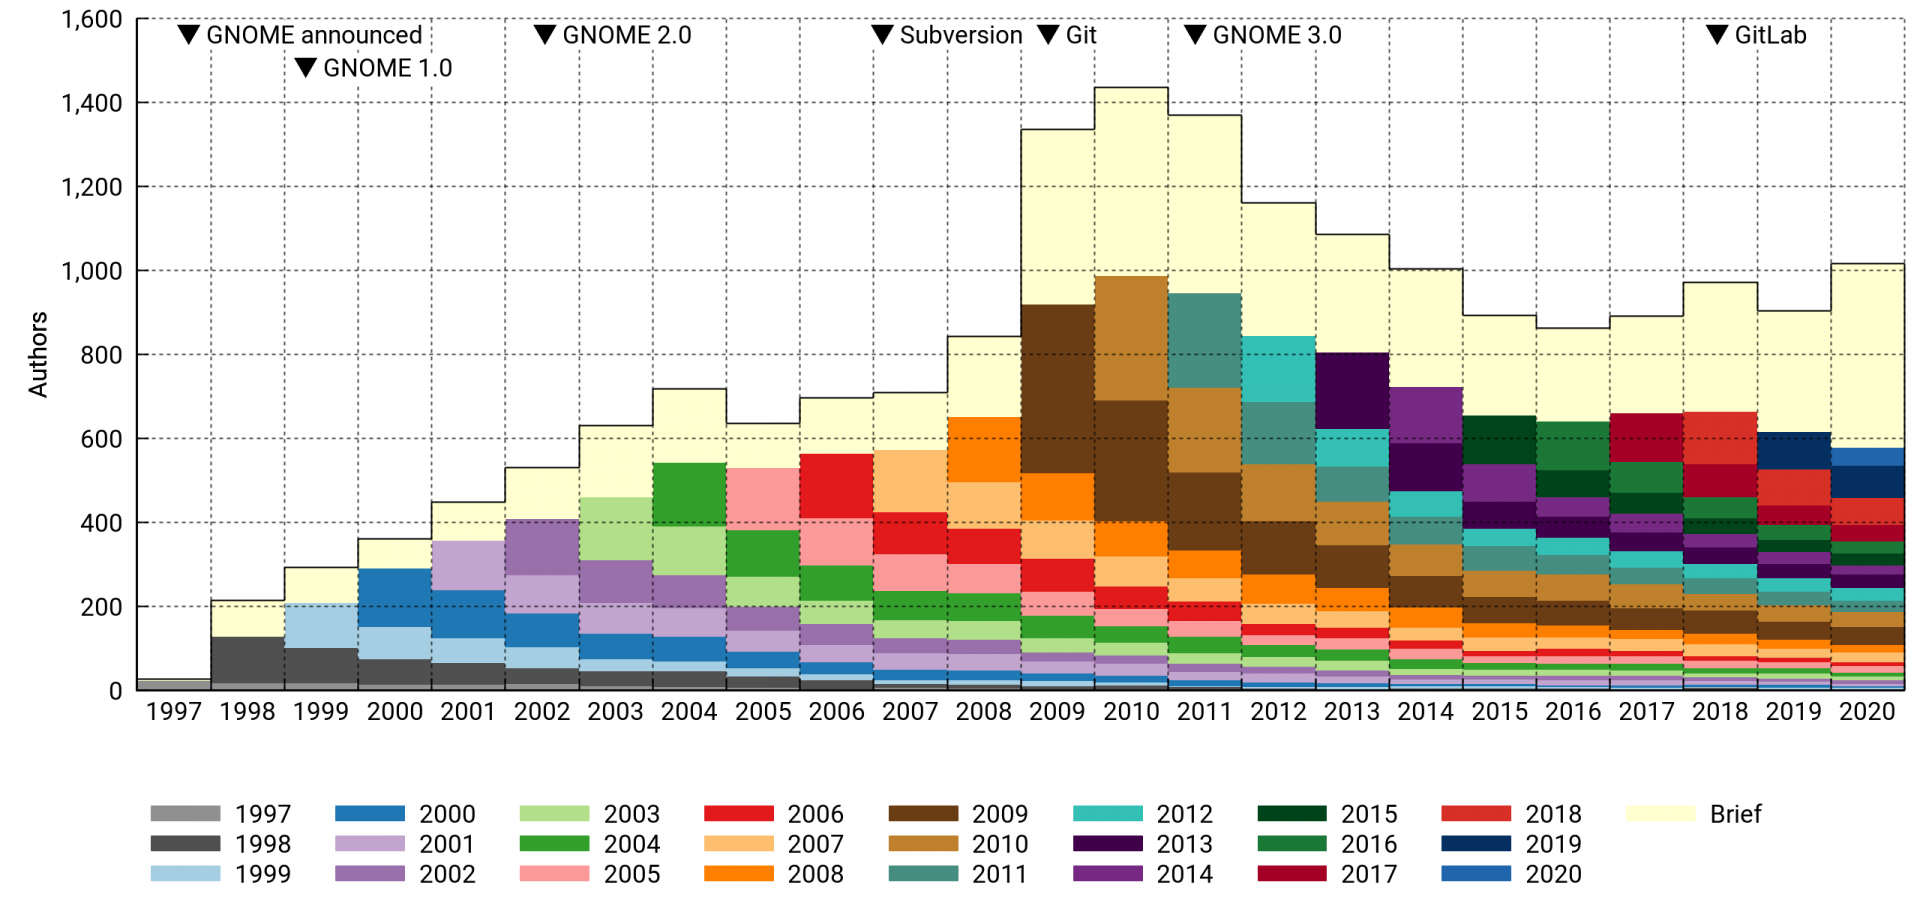 Active GNOME authors per year, first-year cohorts